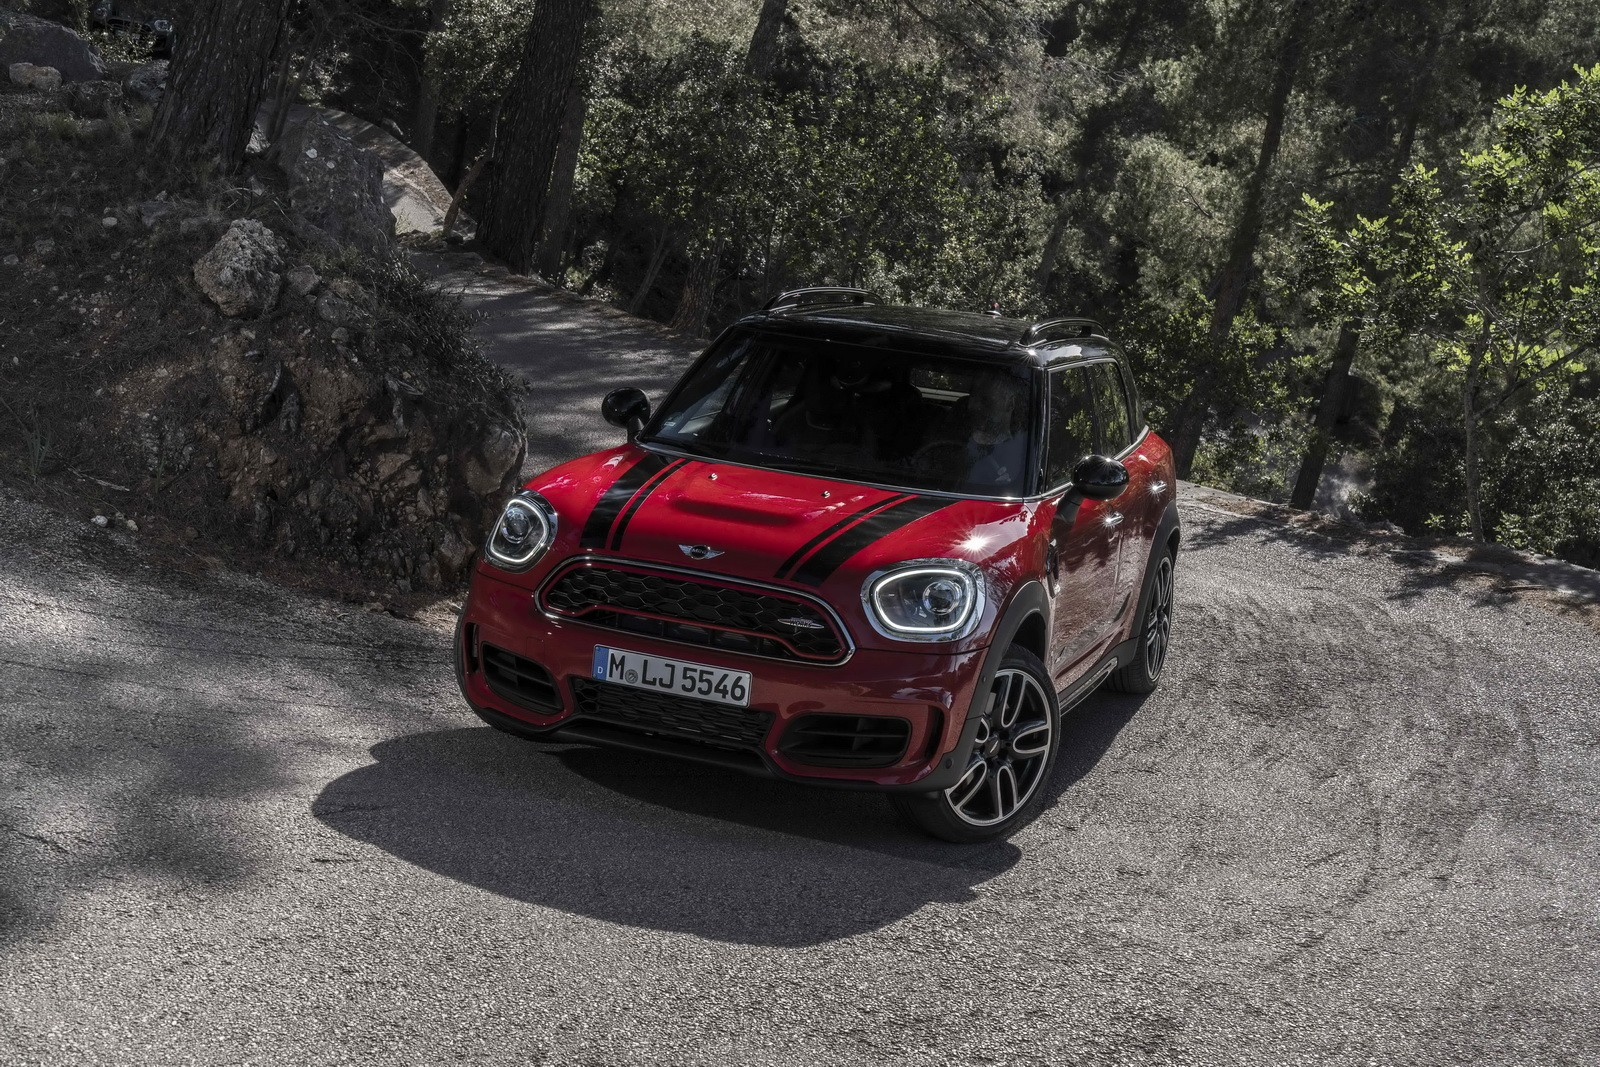 New MINI JCW Countryman Review Says Its Disappointingly Fat Not